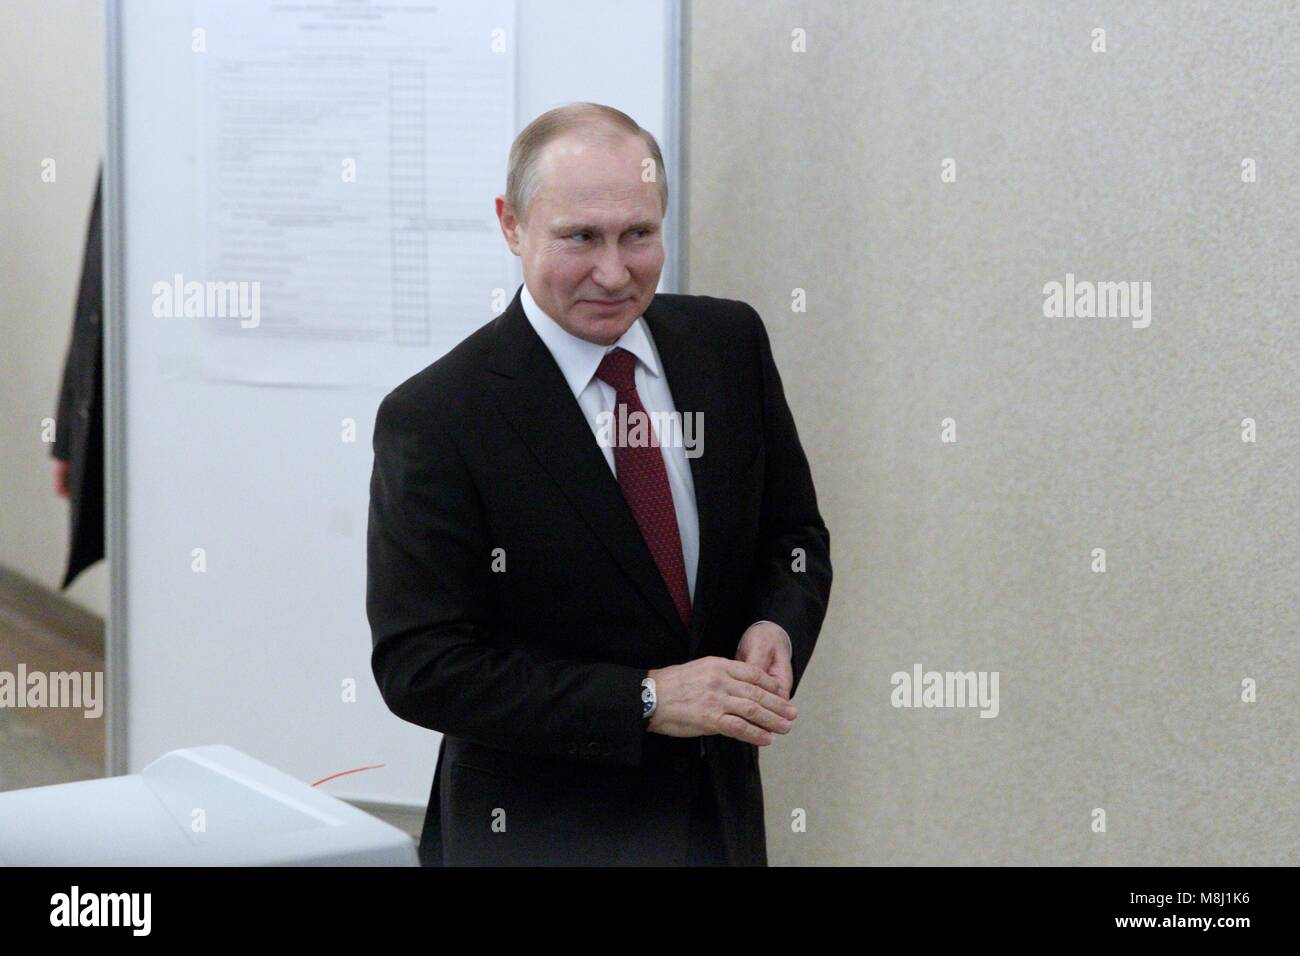 Moscow. 18th Mar, 2018. Russian President Vladimir Putin leaves a polling station after voting in Moscow March 18, Stock Photo